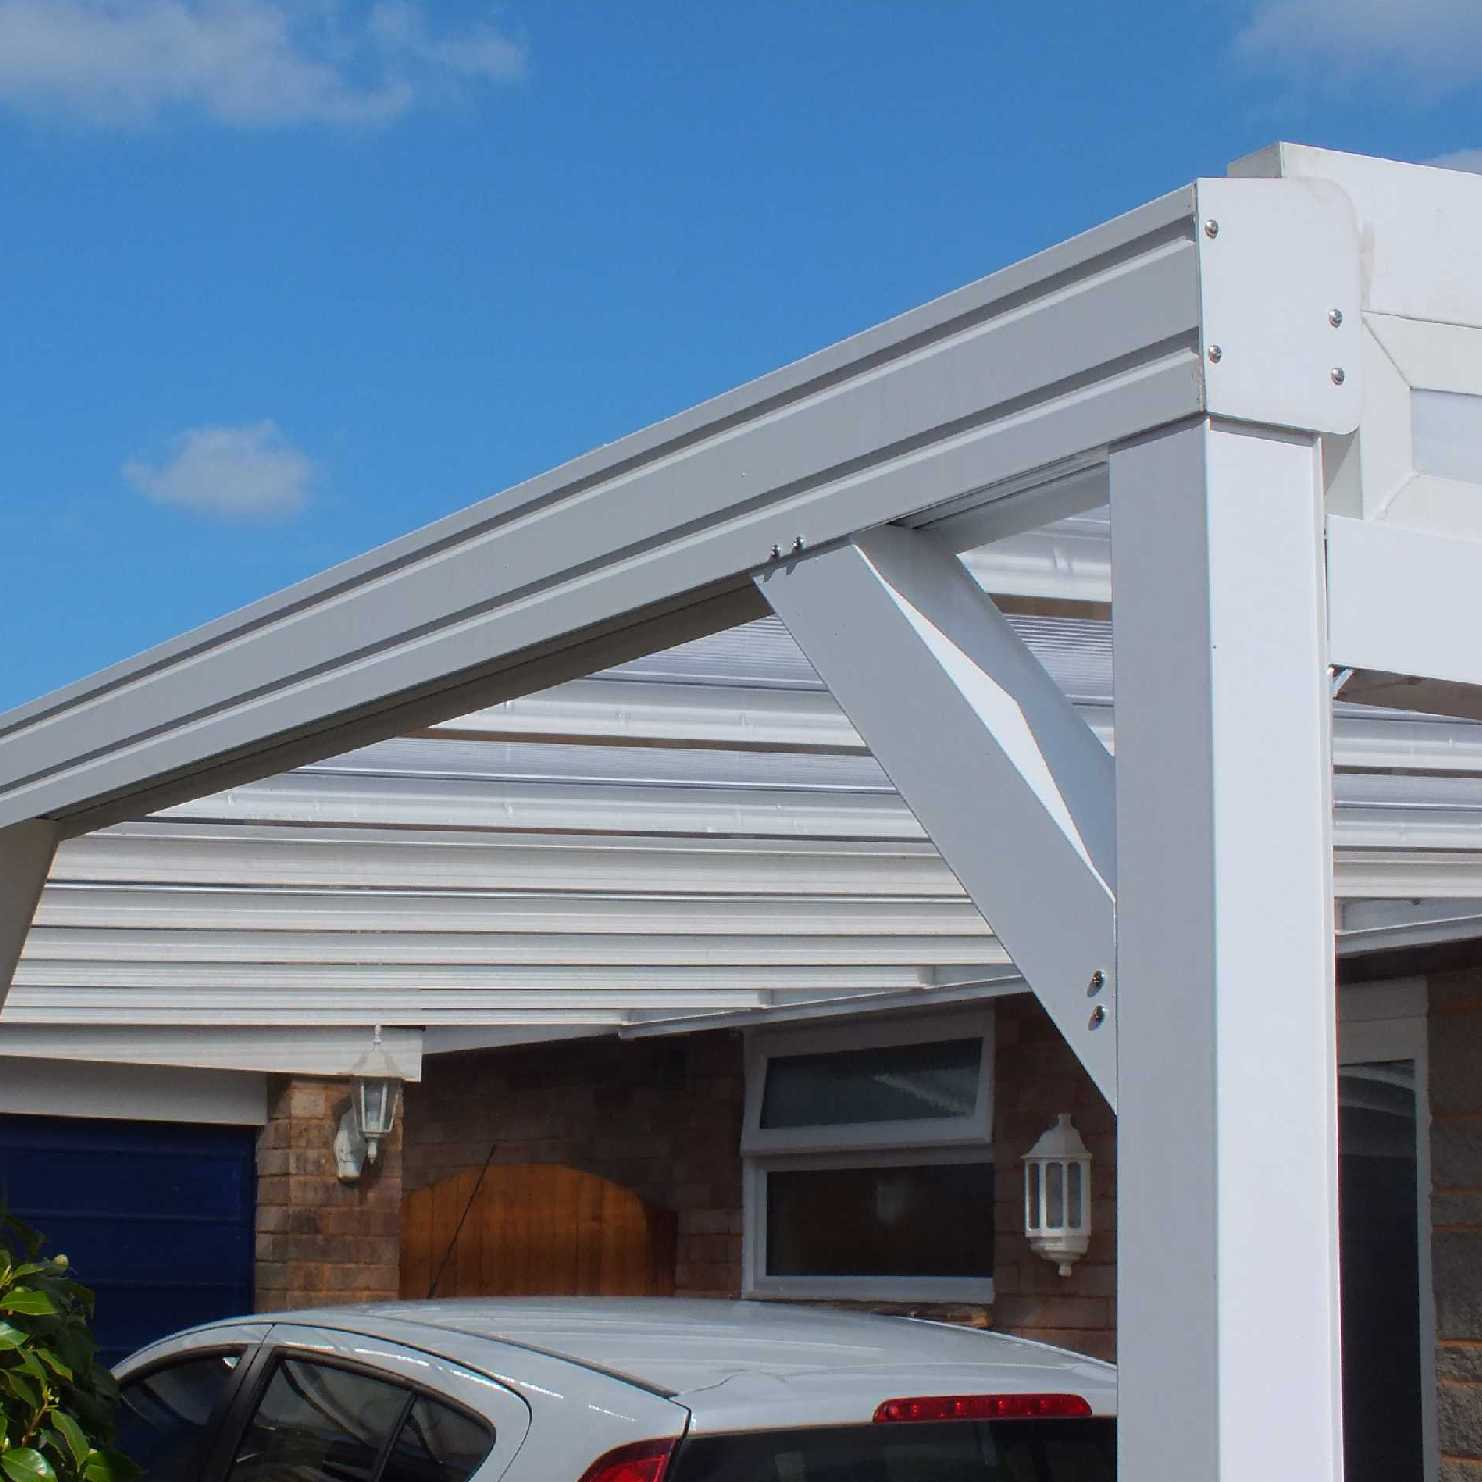 Great deals on Omega Smart Lean-To Canopy with 16mm Polycarbonate Glazing - 5.6m (W) x 4.0m (P), (3) Supporting Posts